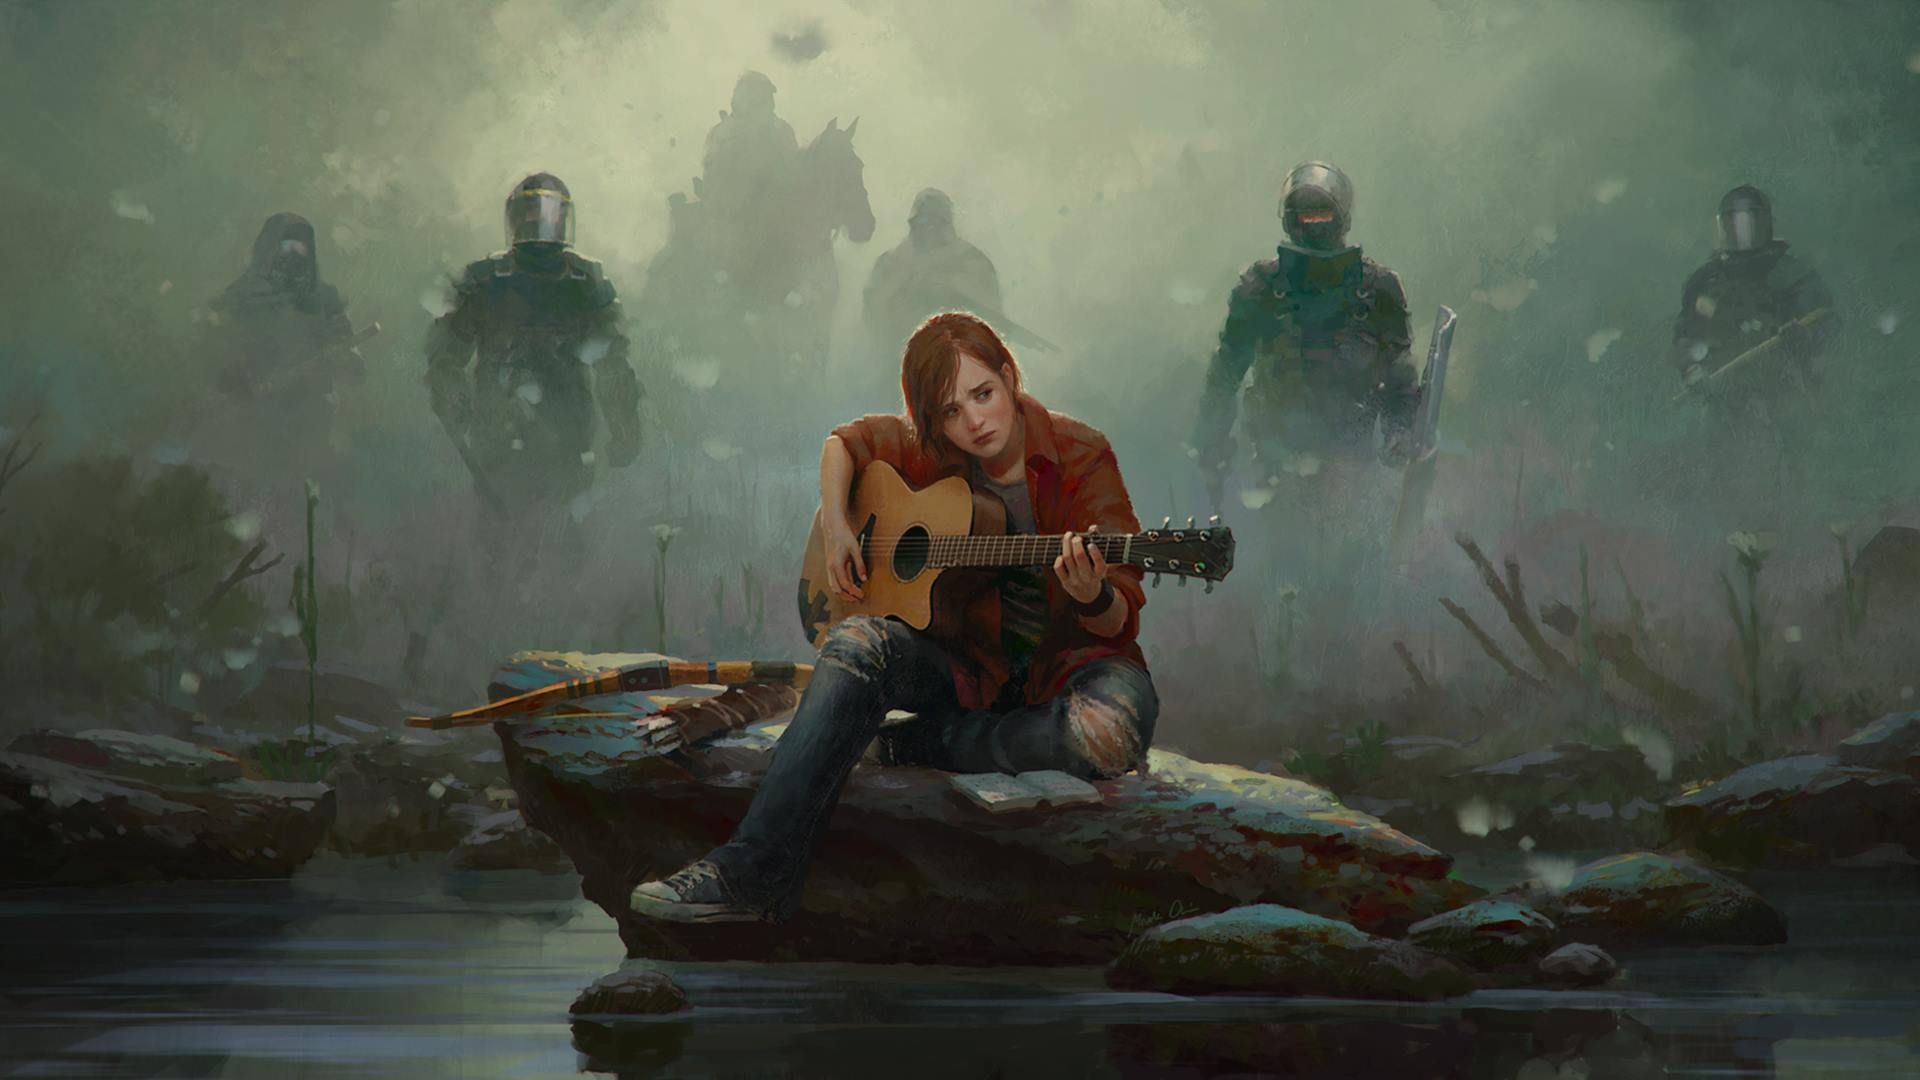 Insider Hints The Last of Us 2 Reveal Coming Before E3 2017, Is It At PlayStation Experience 2016?